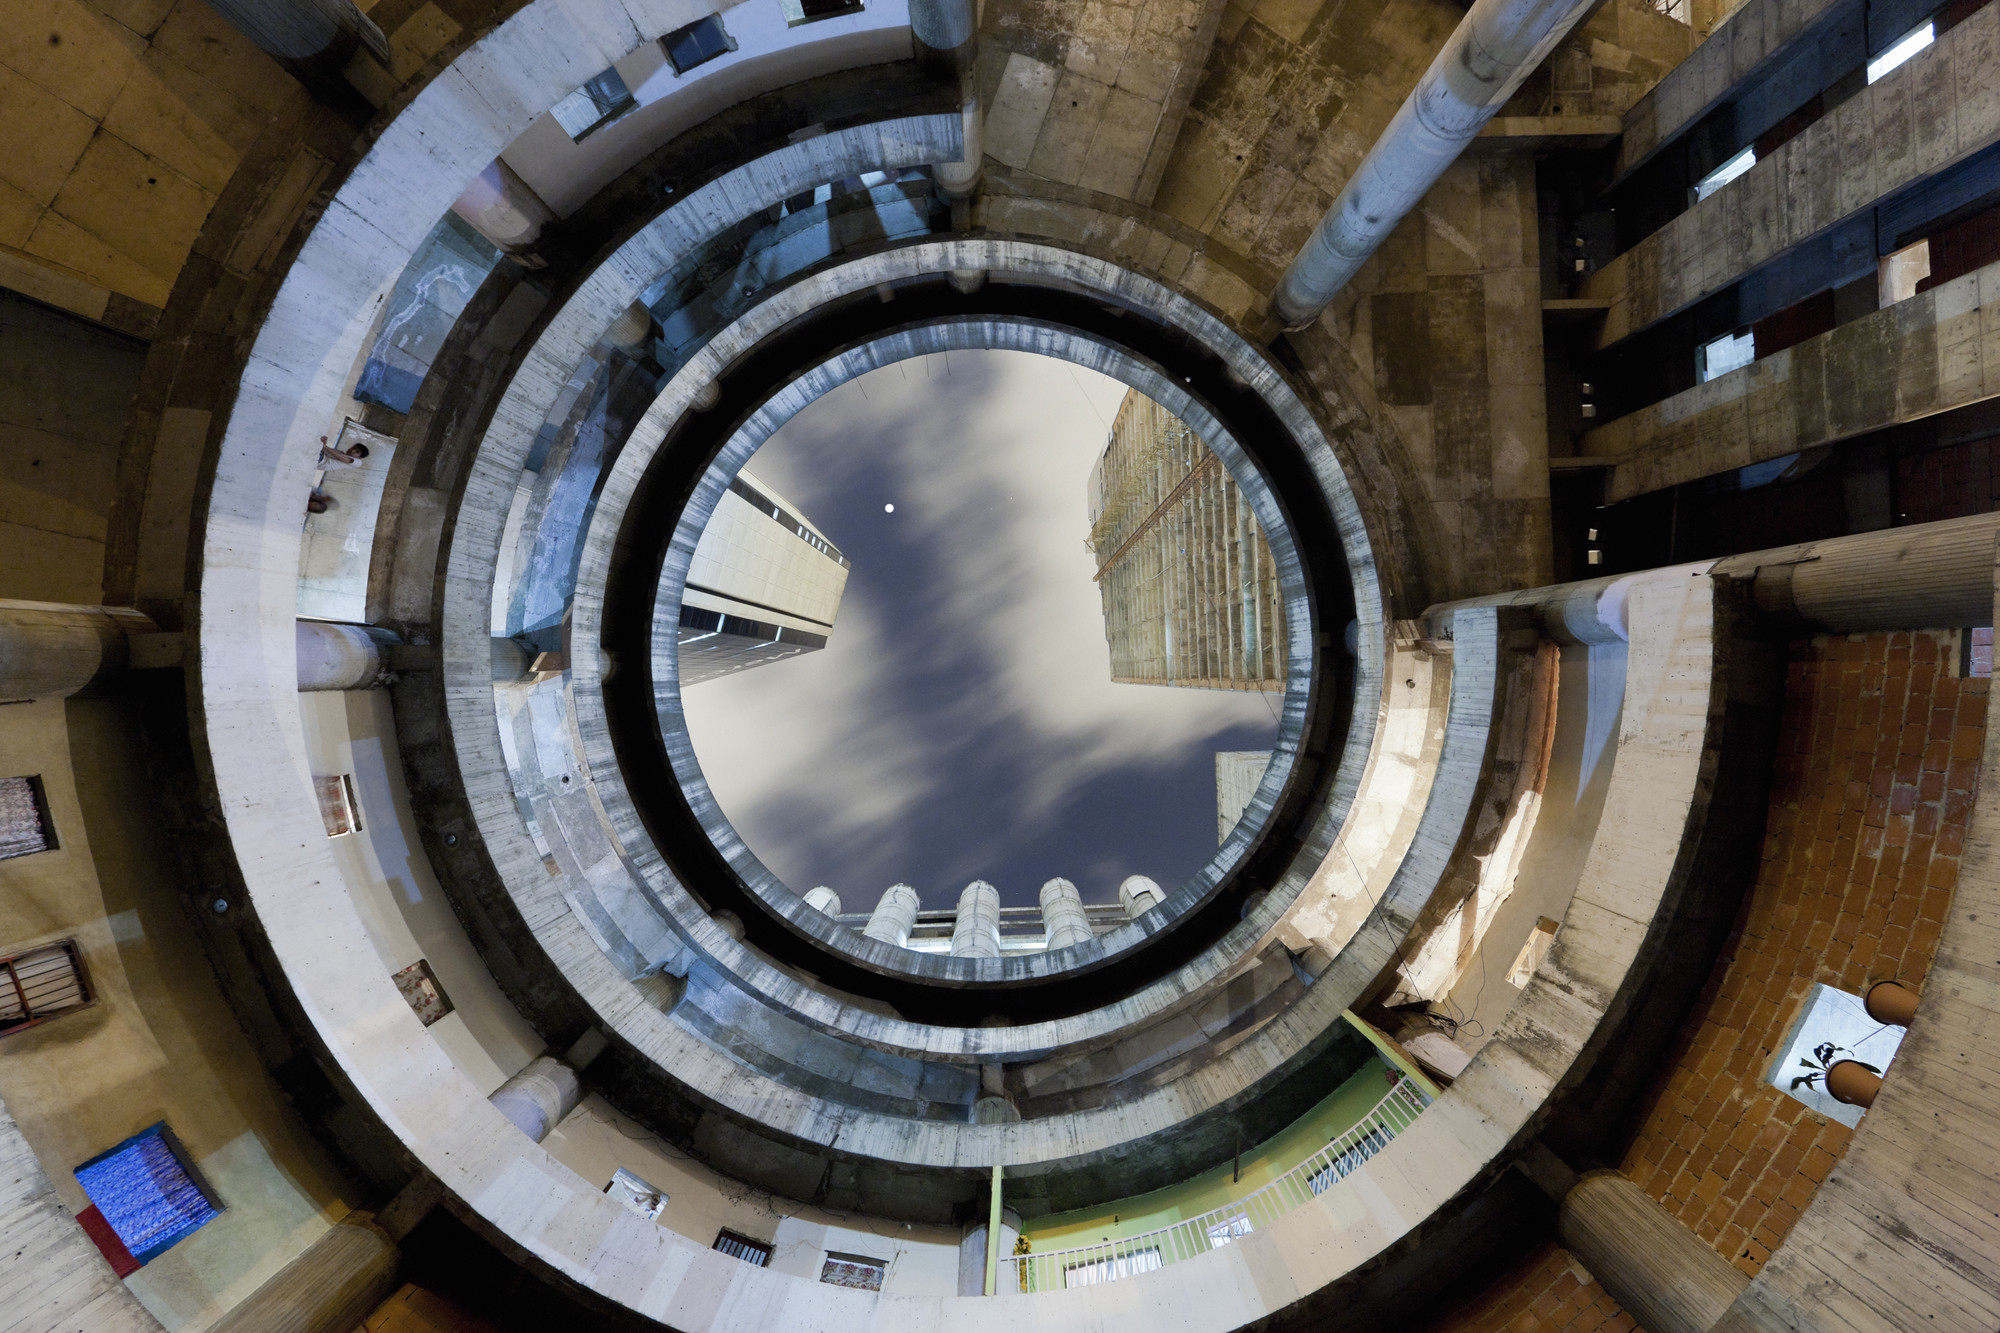 Constructing Worlds: Photography and Architecture in the Modern Age , 1. Iwan Baan Torre David #2, 2011 Image courtesy of the artist and Perry Rubenstein Gallery, Los Angeles. Image Courtesy of Barbican Art Gallery